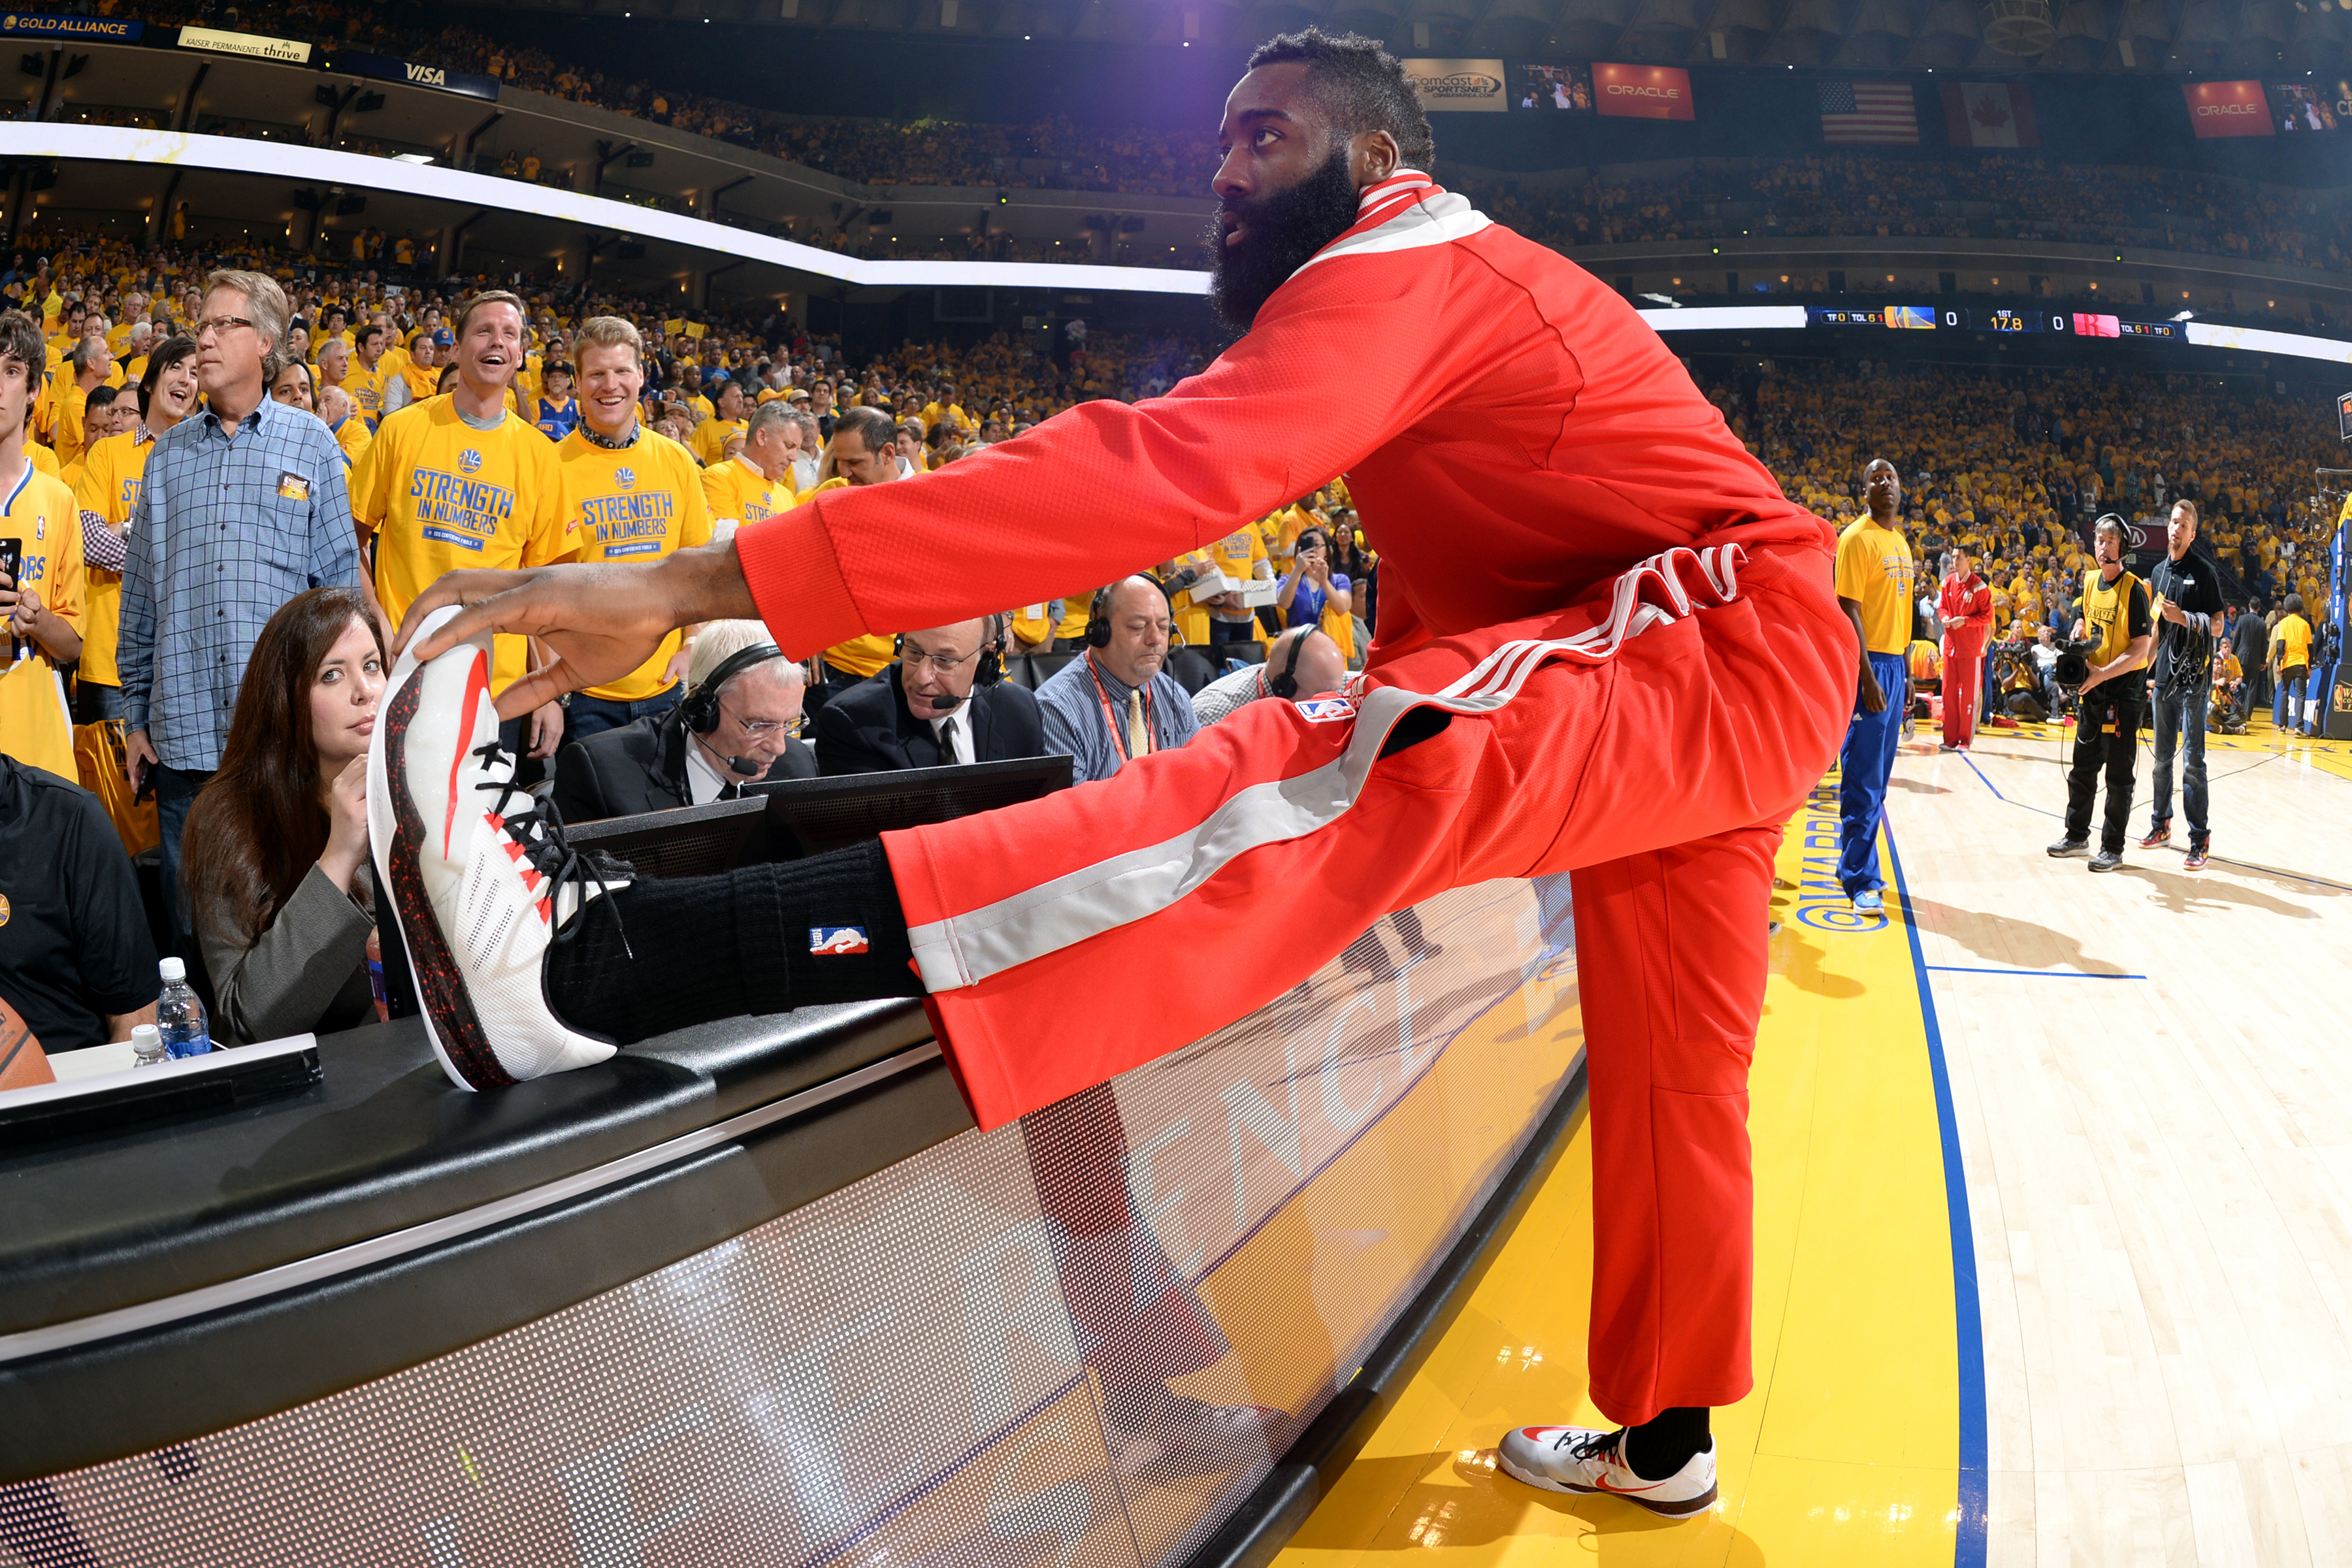 New Adidas pitchman James Harden can't